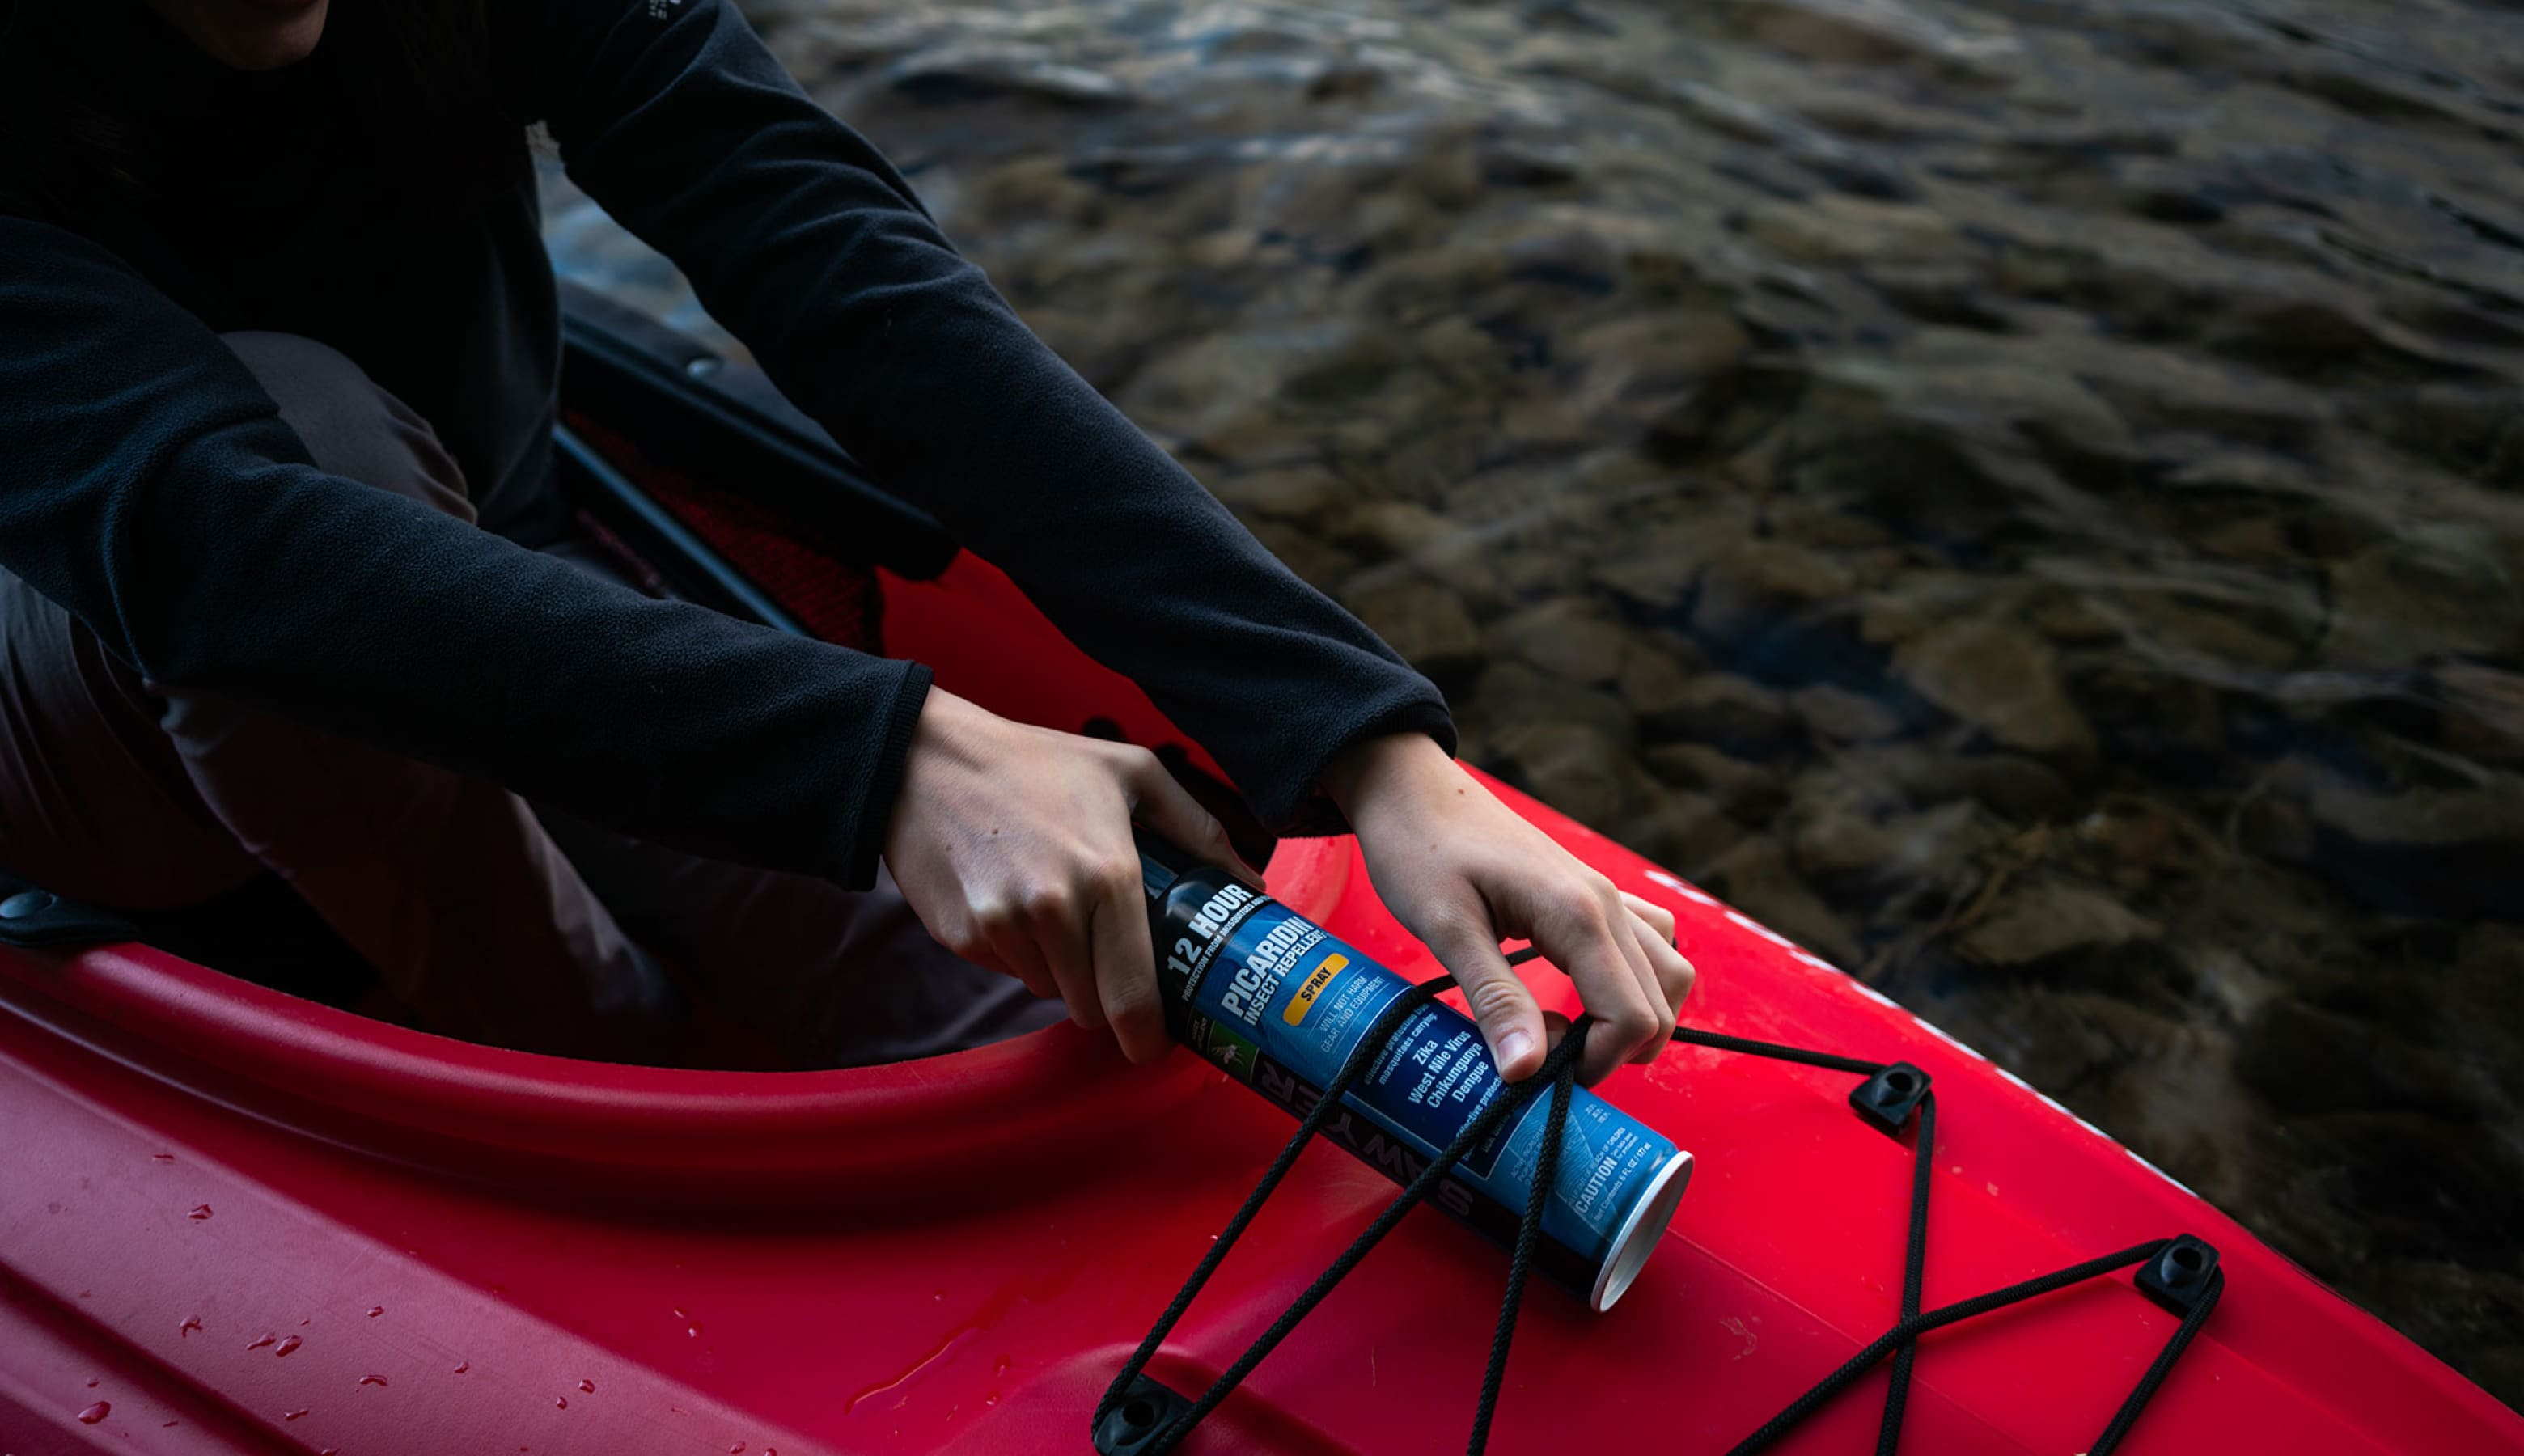 A canoeist ties Sawyer Insect Repellent into a canoe.